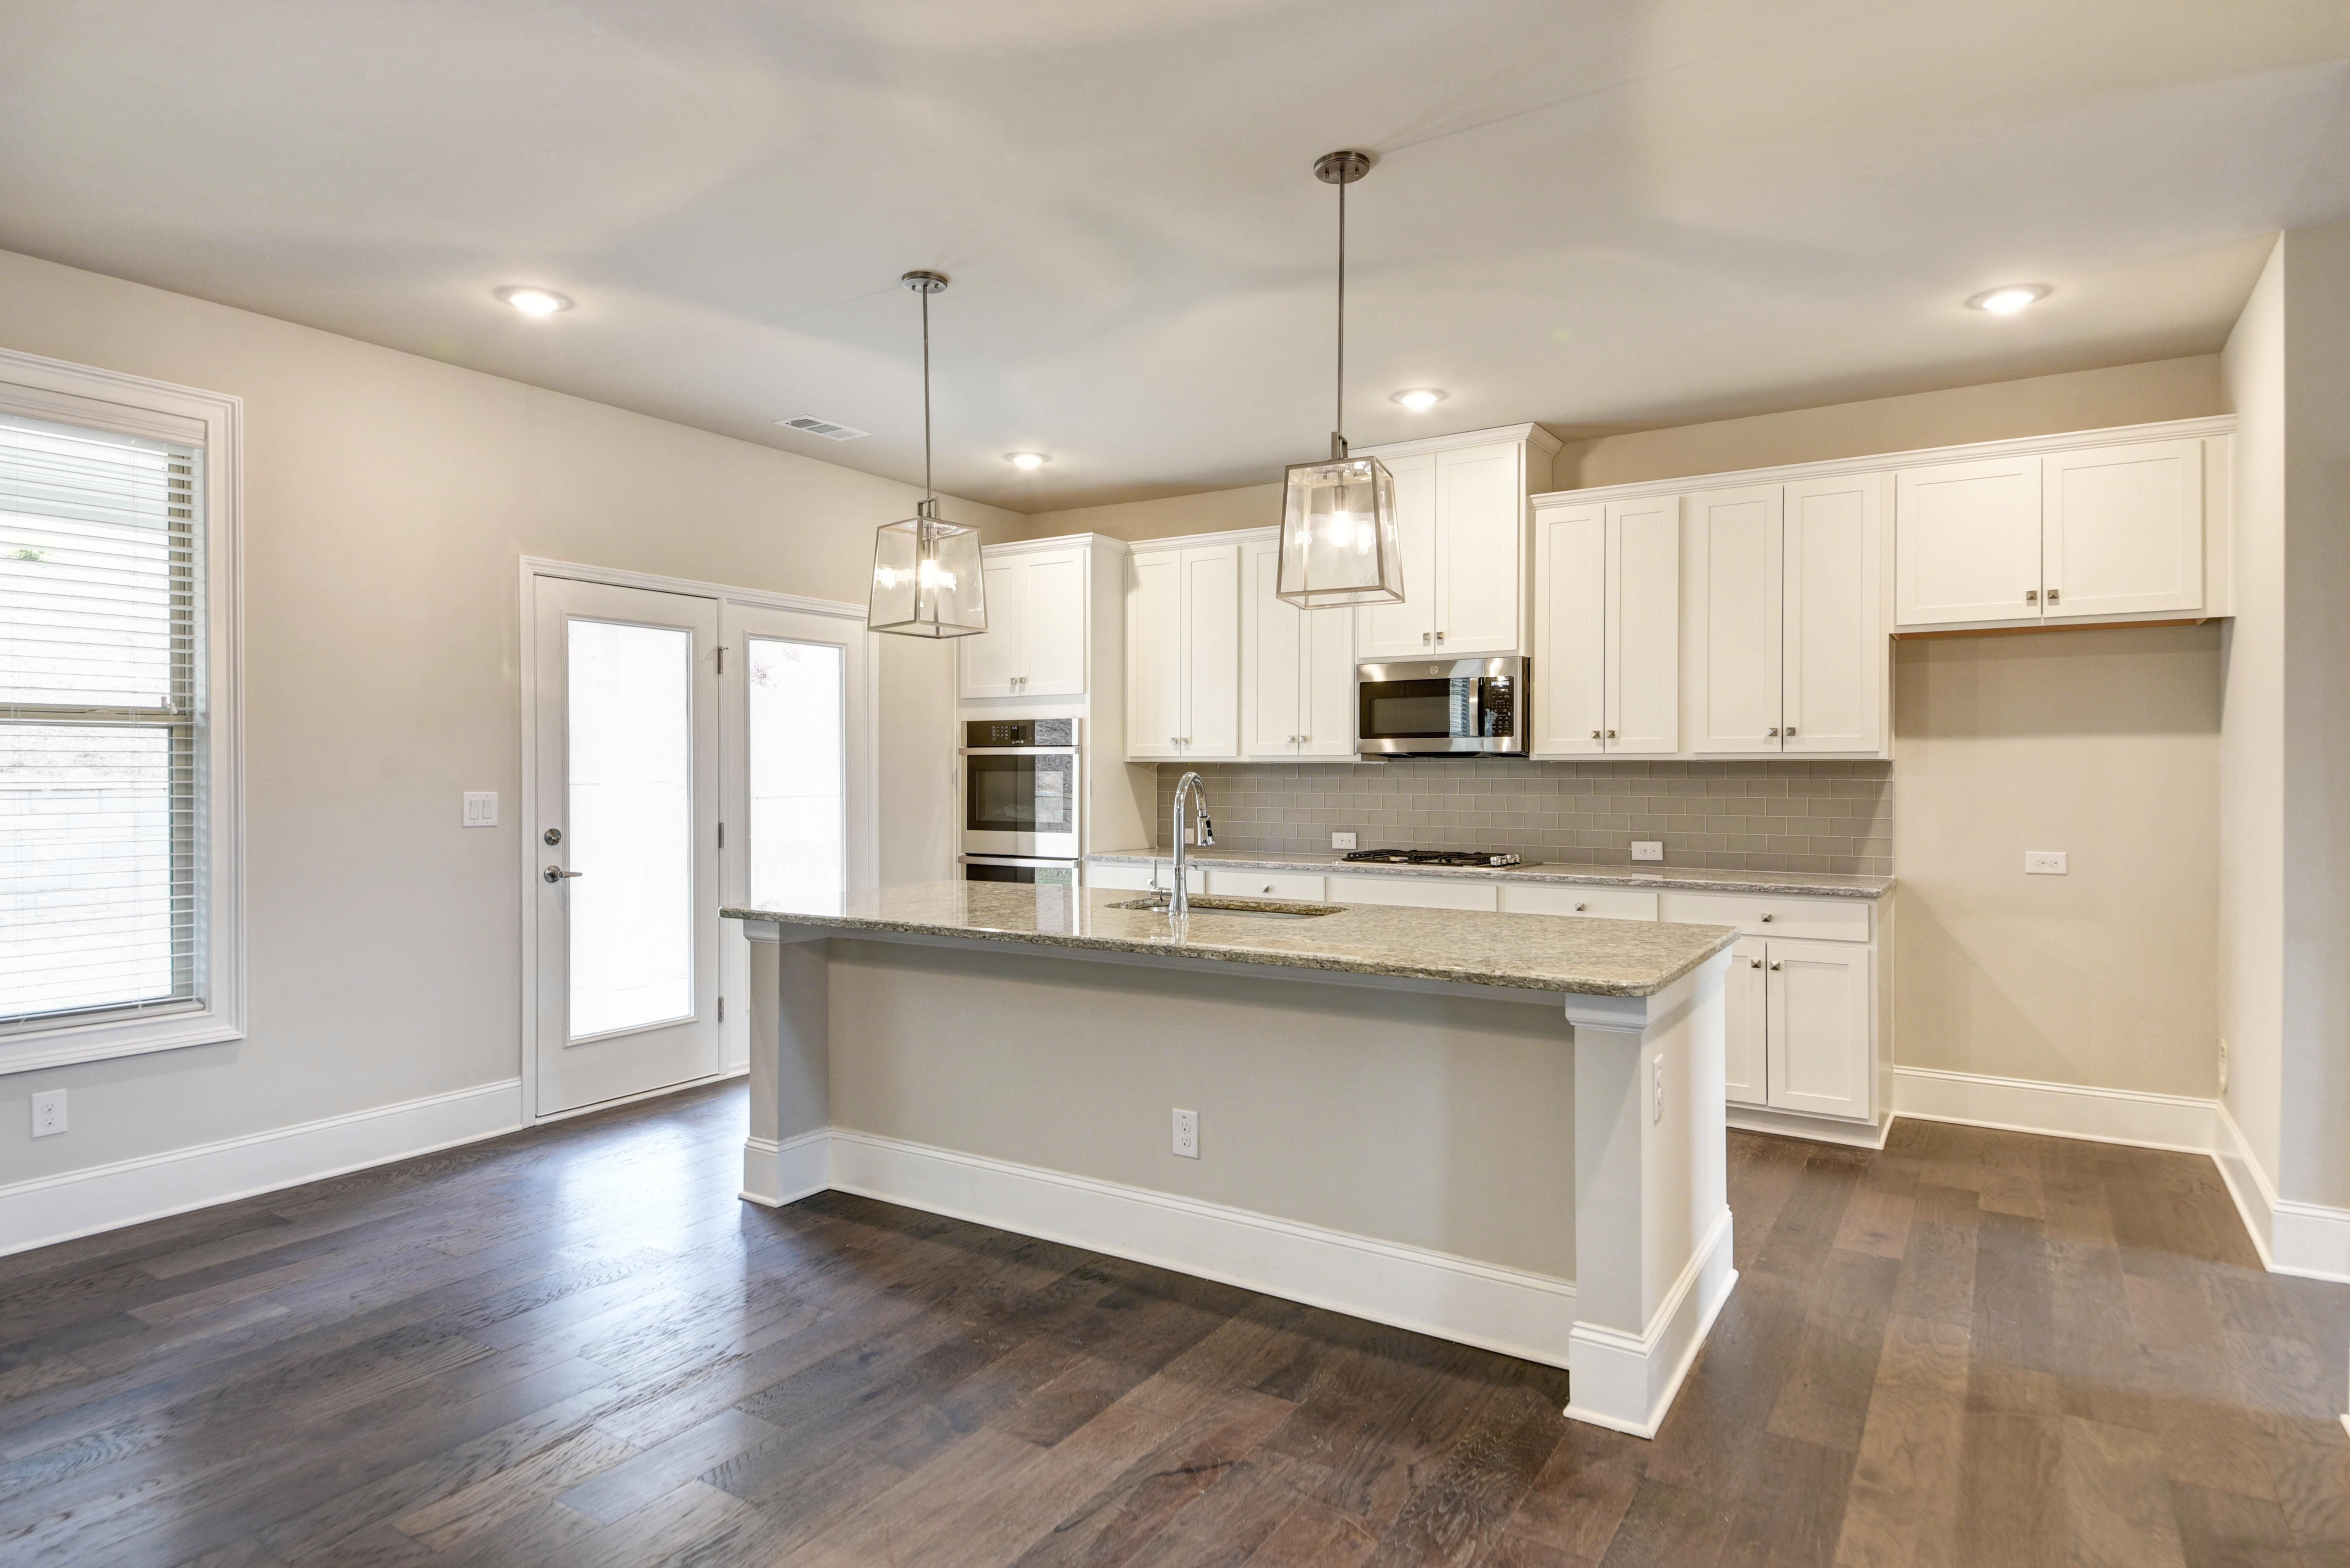 Kitchen featured in The Margaret By Almont Homes in Atlanta, GA